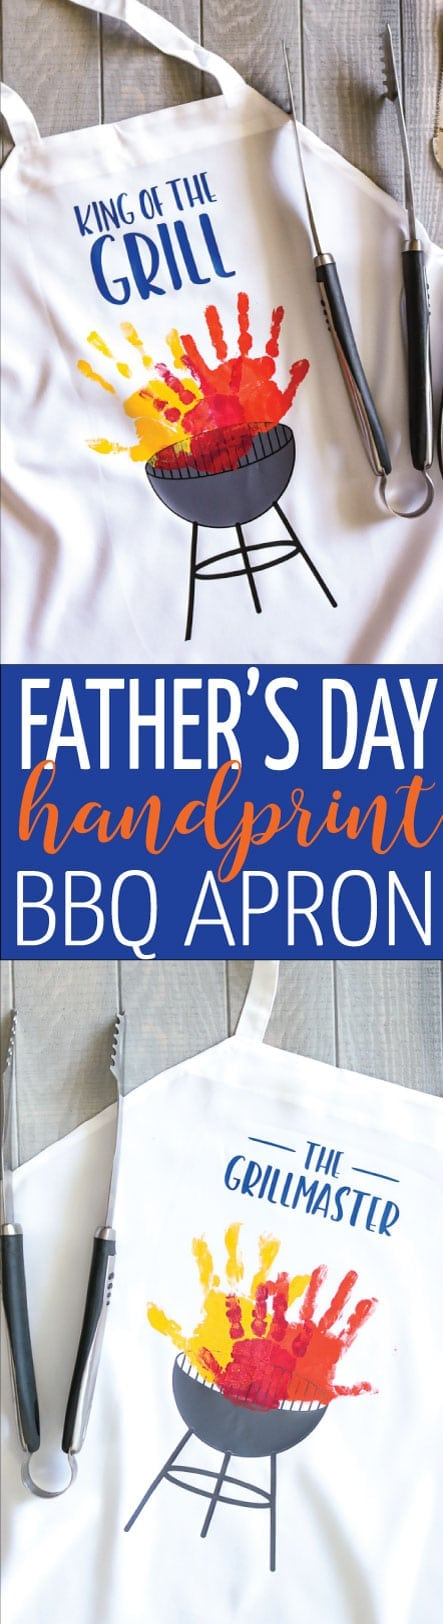 Create the cutest handmade Father's Day Gift with this handprint BBQ Apron! SVG files to help you out!